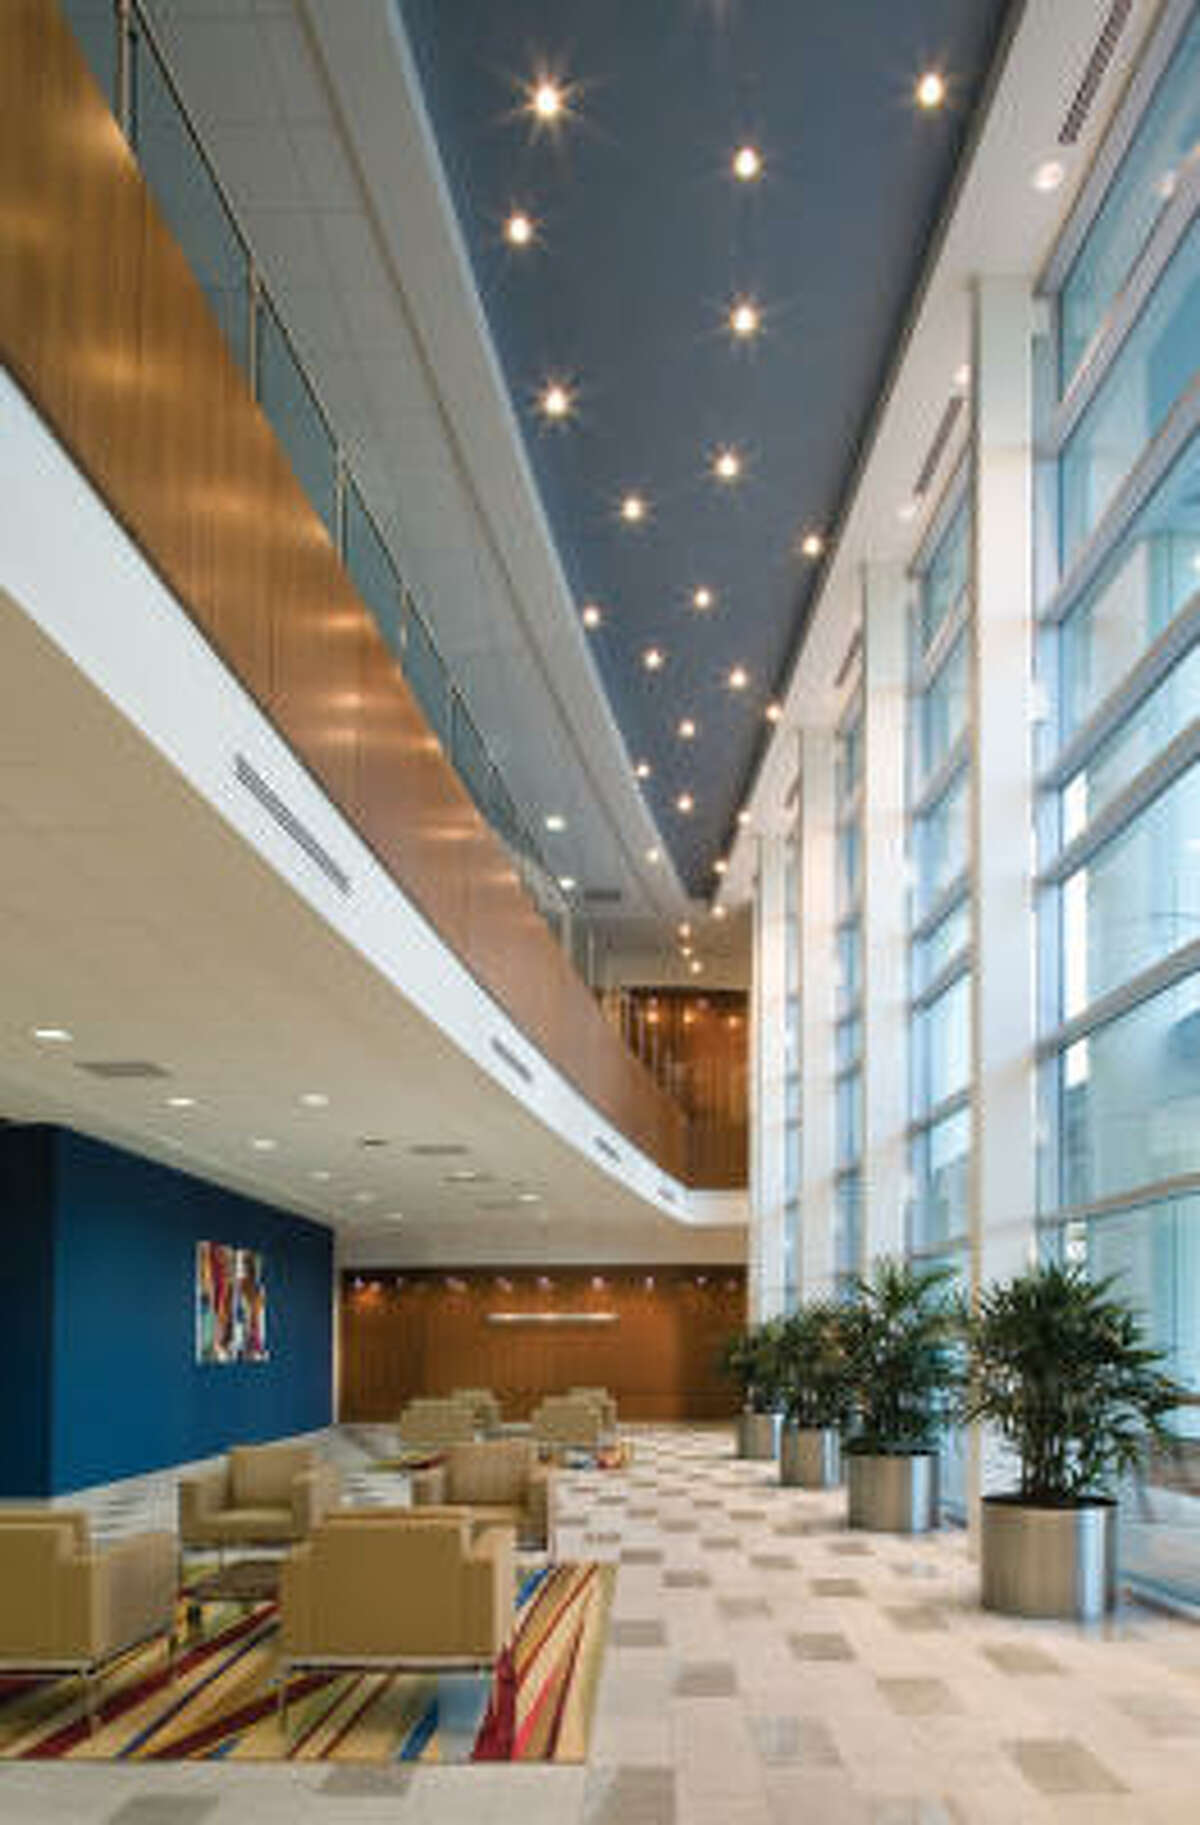 Julie Gauthier, of Kirksey, won a first place ASID award for the Health Sciences Center of Texas Woman's University in Houston. Deep colors soften to pastels as one rises through the building. Key features are limestone walls and pendant fixtures.